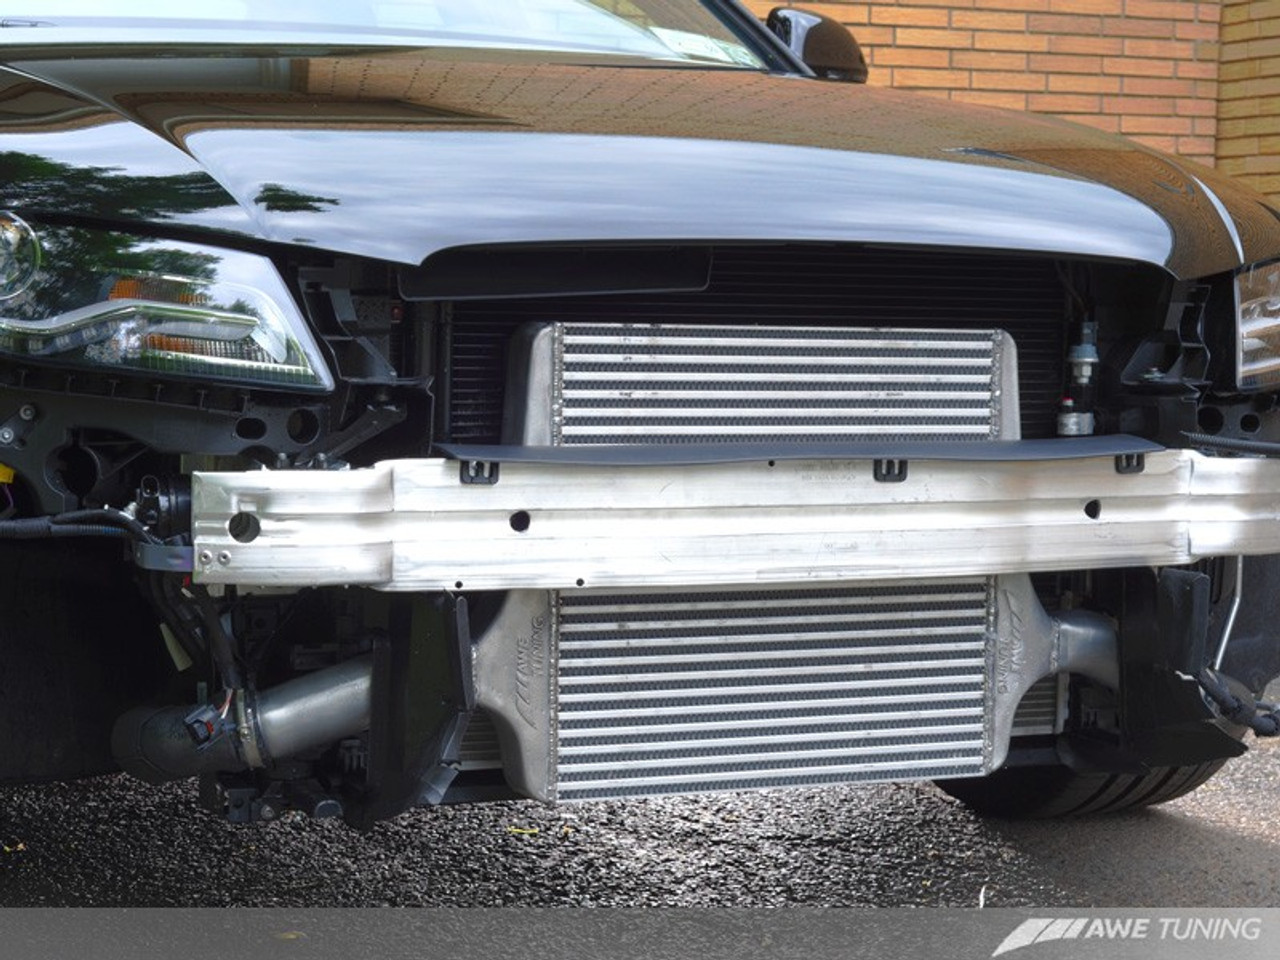 AWE Tuning Front Mounted Intercooler Kit - A4 & A5 - B8 / B8.5 2.0T